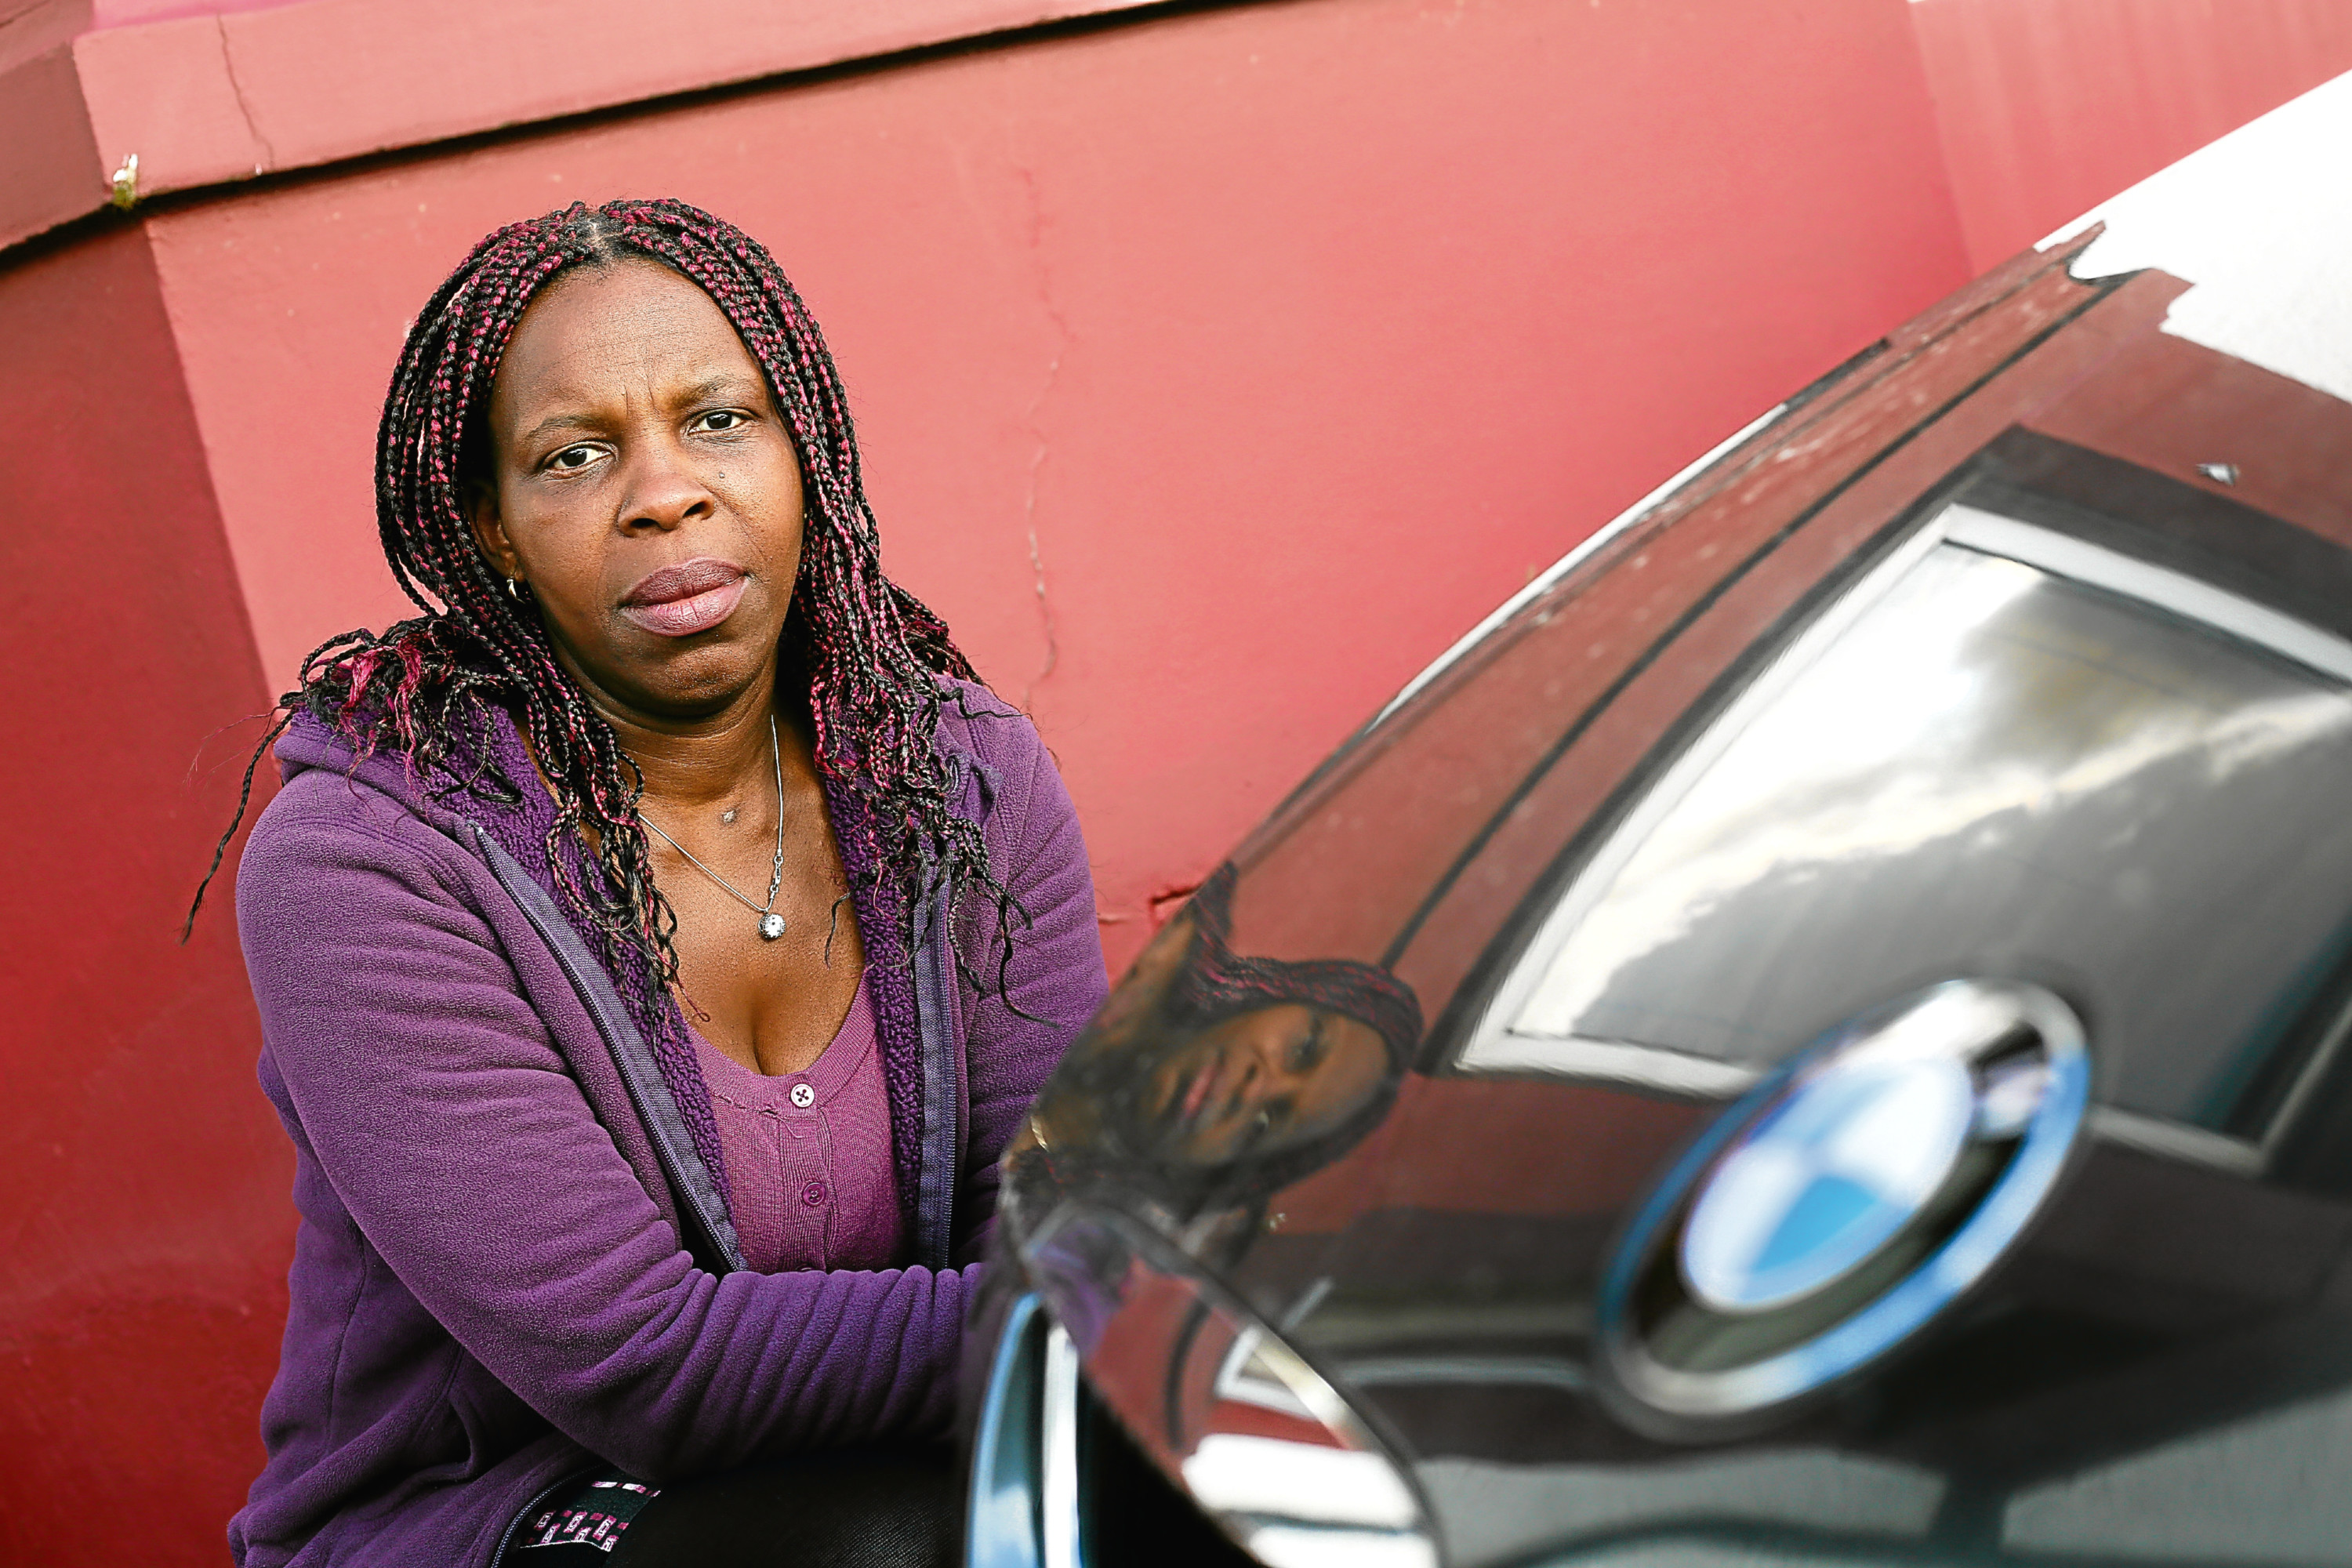 Cynthia Rotibi was approached after putting her car up for sale on Gumtree.